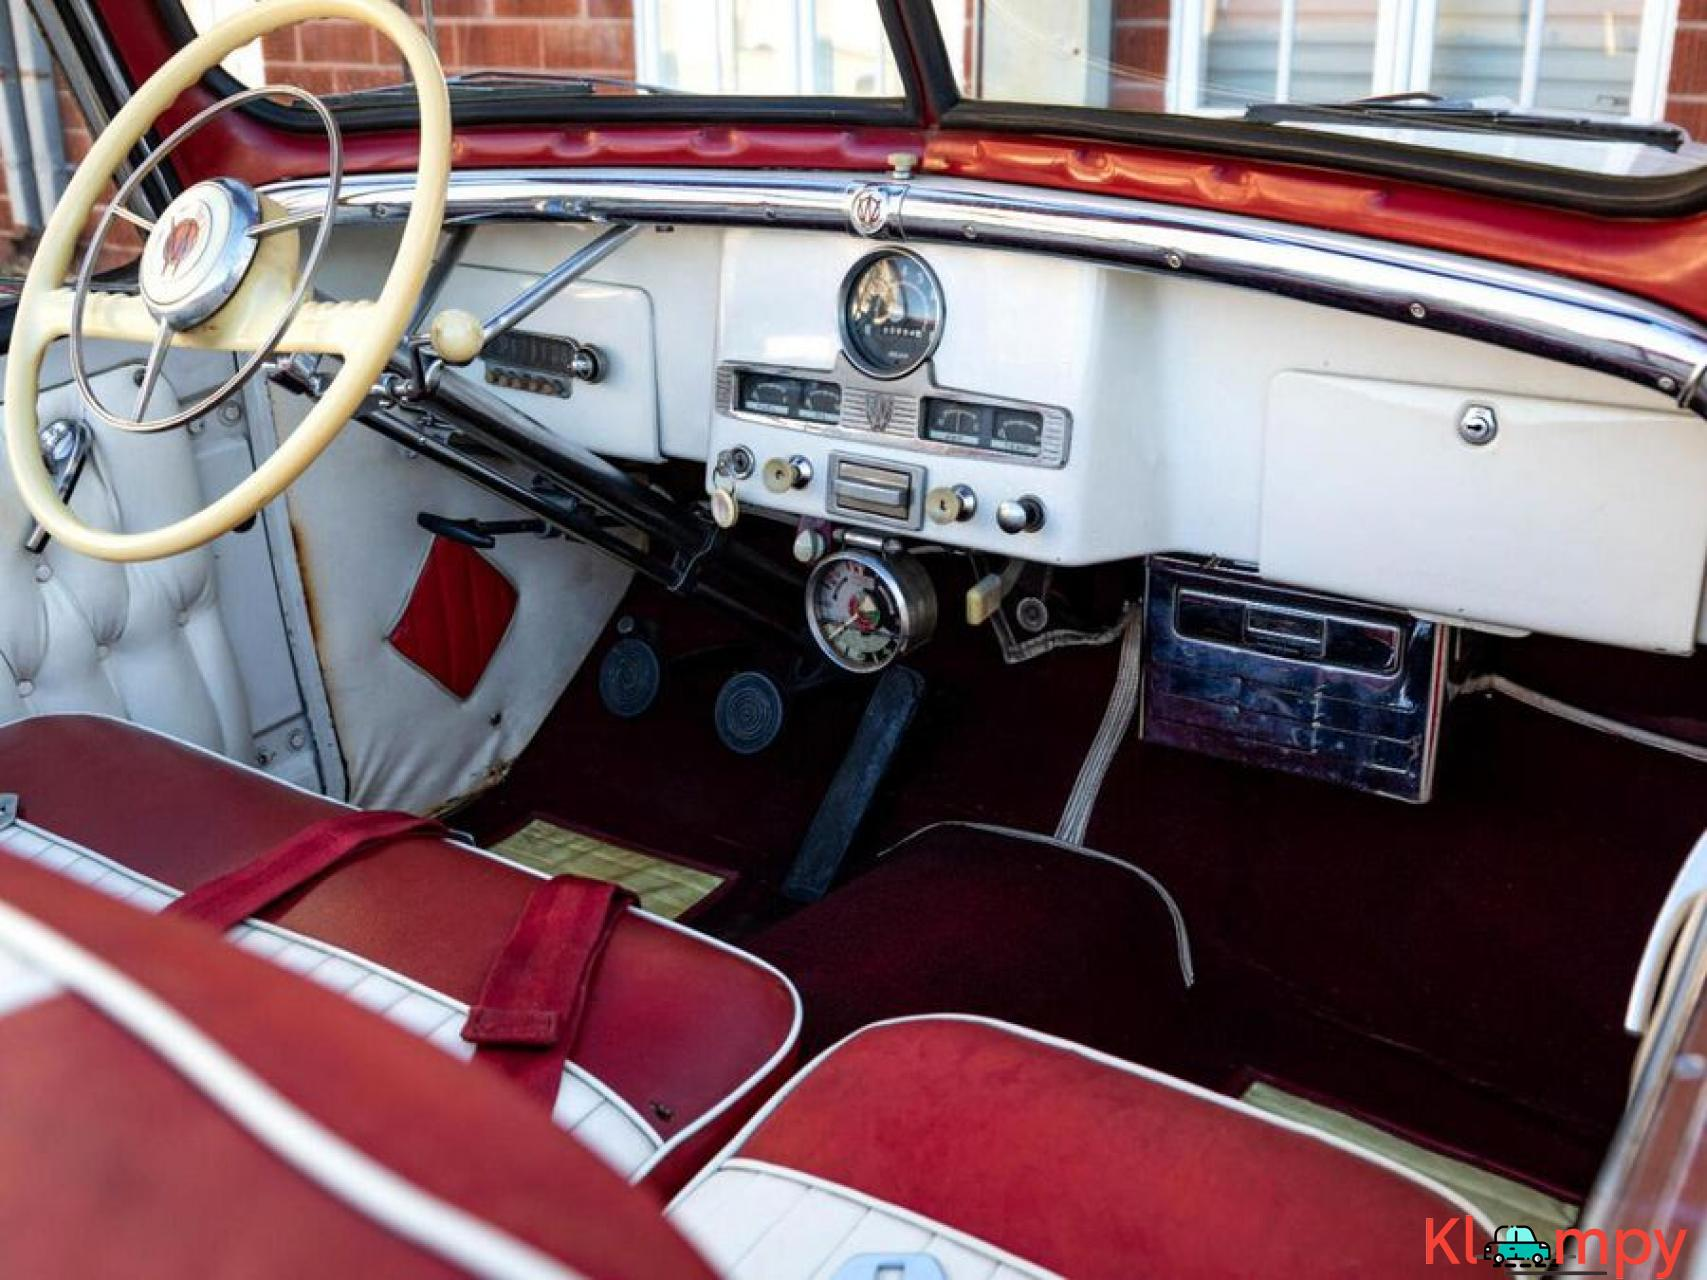 1951 Willys Jeepster Convertible 134.2 cu in 2.2 L - 13/17